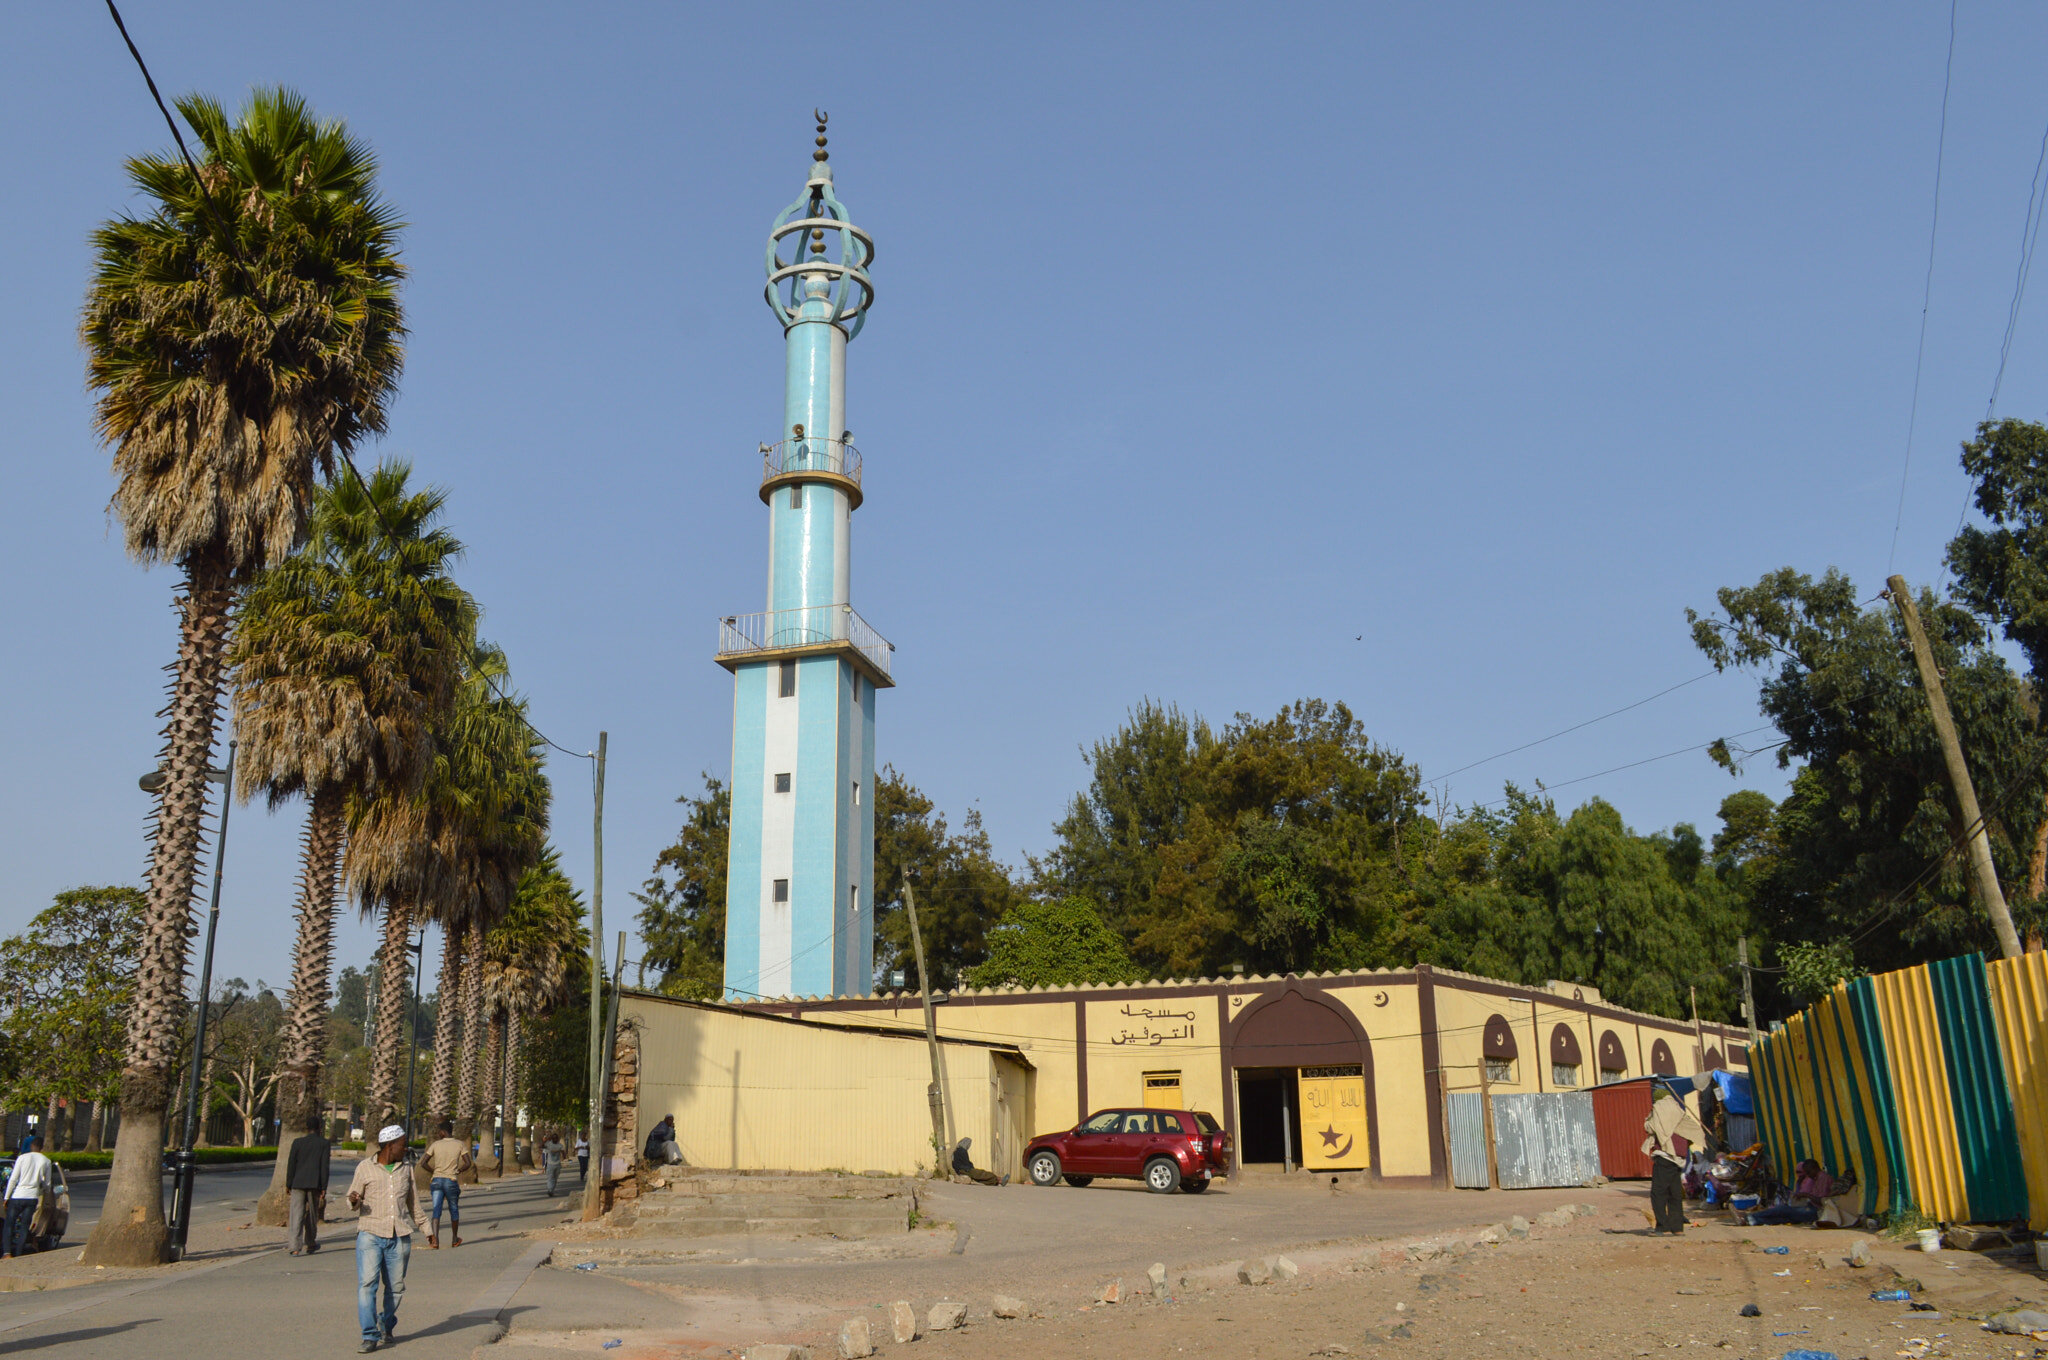 One of the many mosques found on the streets of Ethiopia, where less than 2% of the population are Christ-followers.   Photo credit